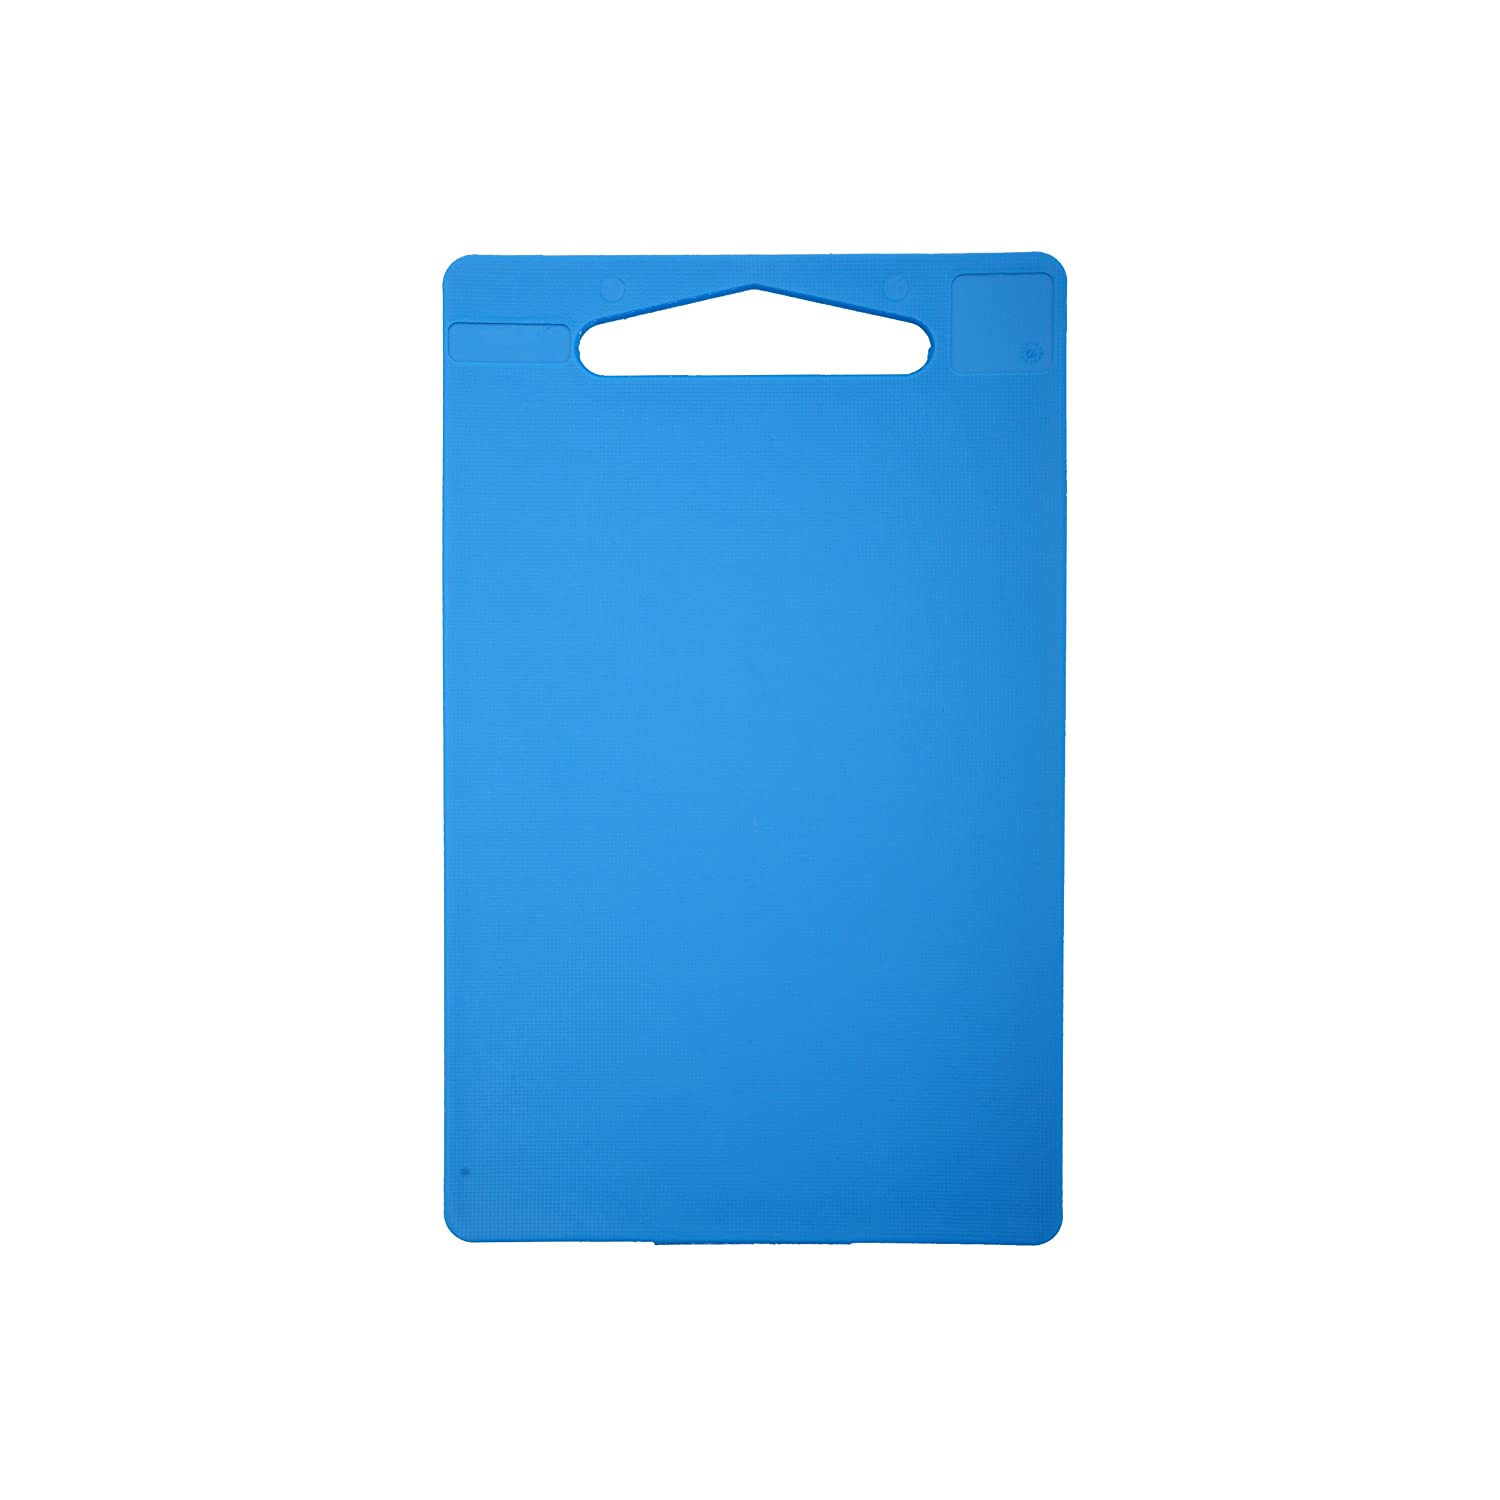 "Linden Sweden Anita Cutting Board with Handle - Safe for Meat and Produce, Won't Dull Knives - Slim, Lightweight Design for Easy Storage, Dishwasher-Safe, Sm, Blue, Small - 9,25"" x 6"""